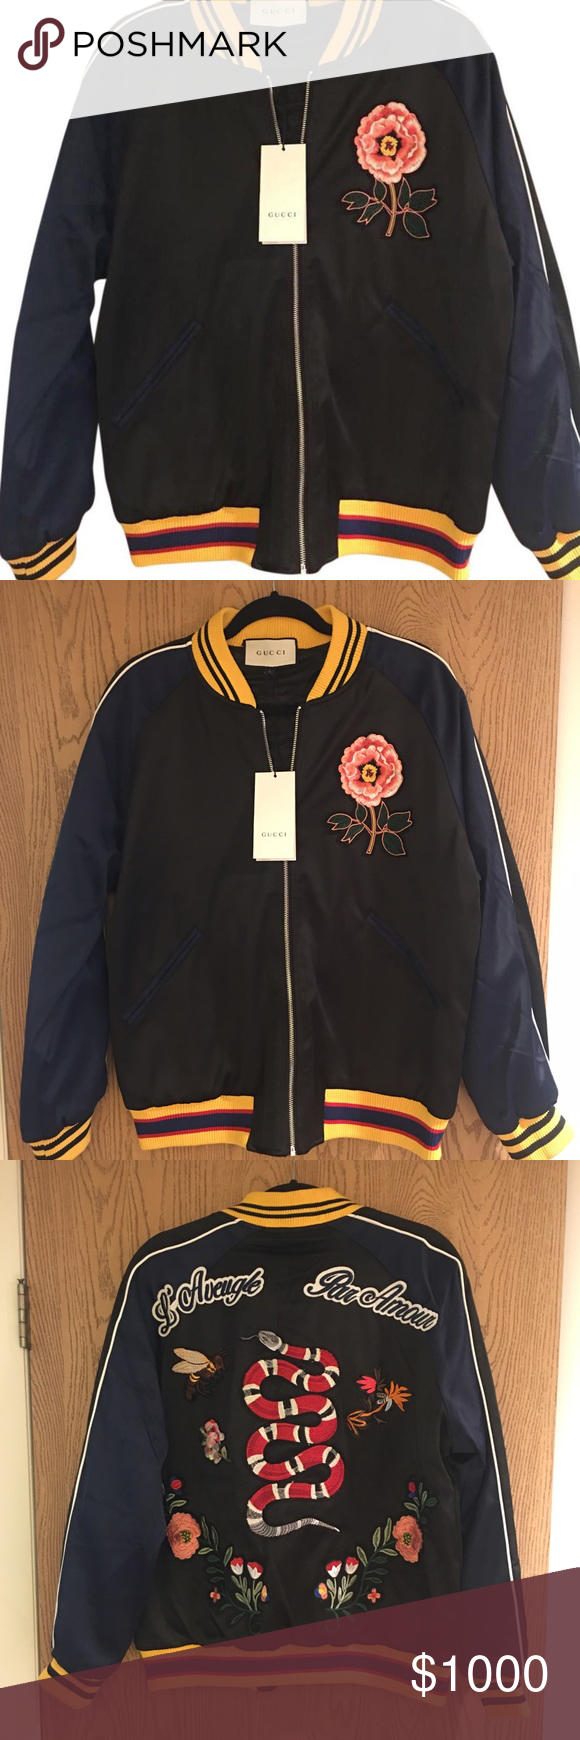 524b1fd9d Gucci Flower & Snake Appliqué Satin Bomber Jacket New with tags Gucci  AW16 Satin Bomber